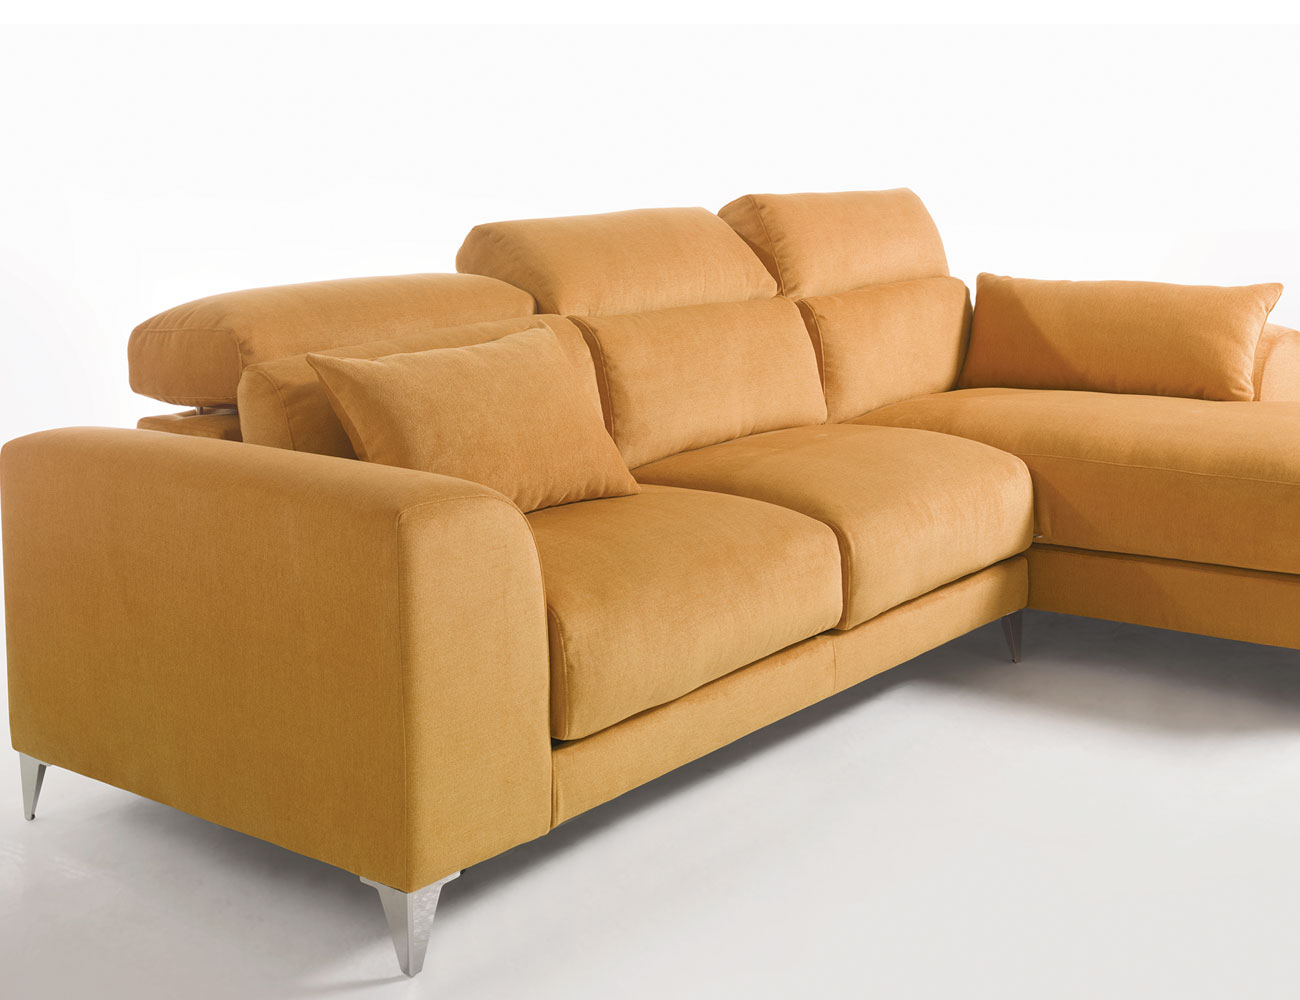 Sofa chaiselongue gran lujo decorativo patas altas amarillo 218